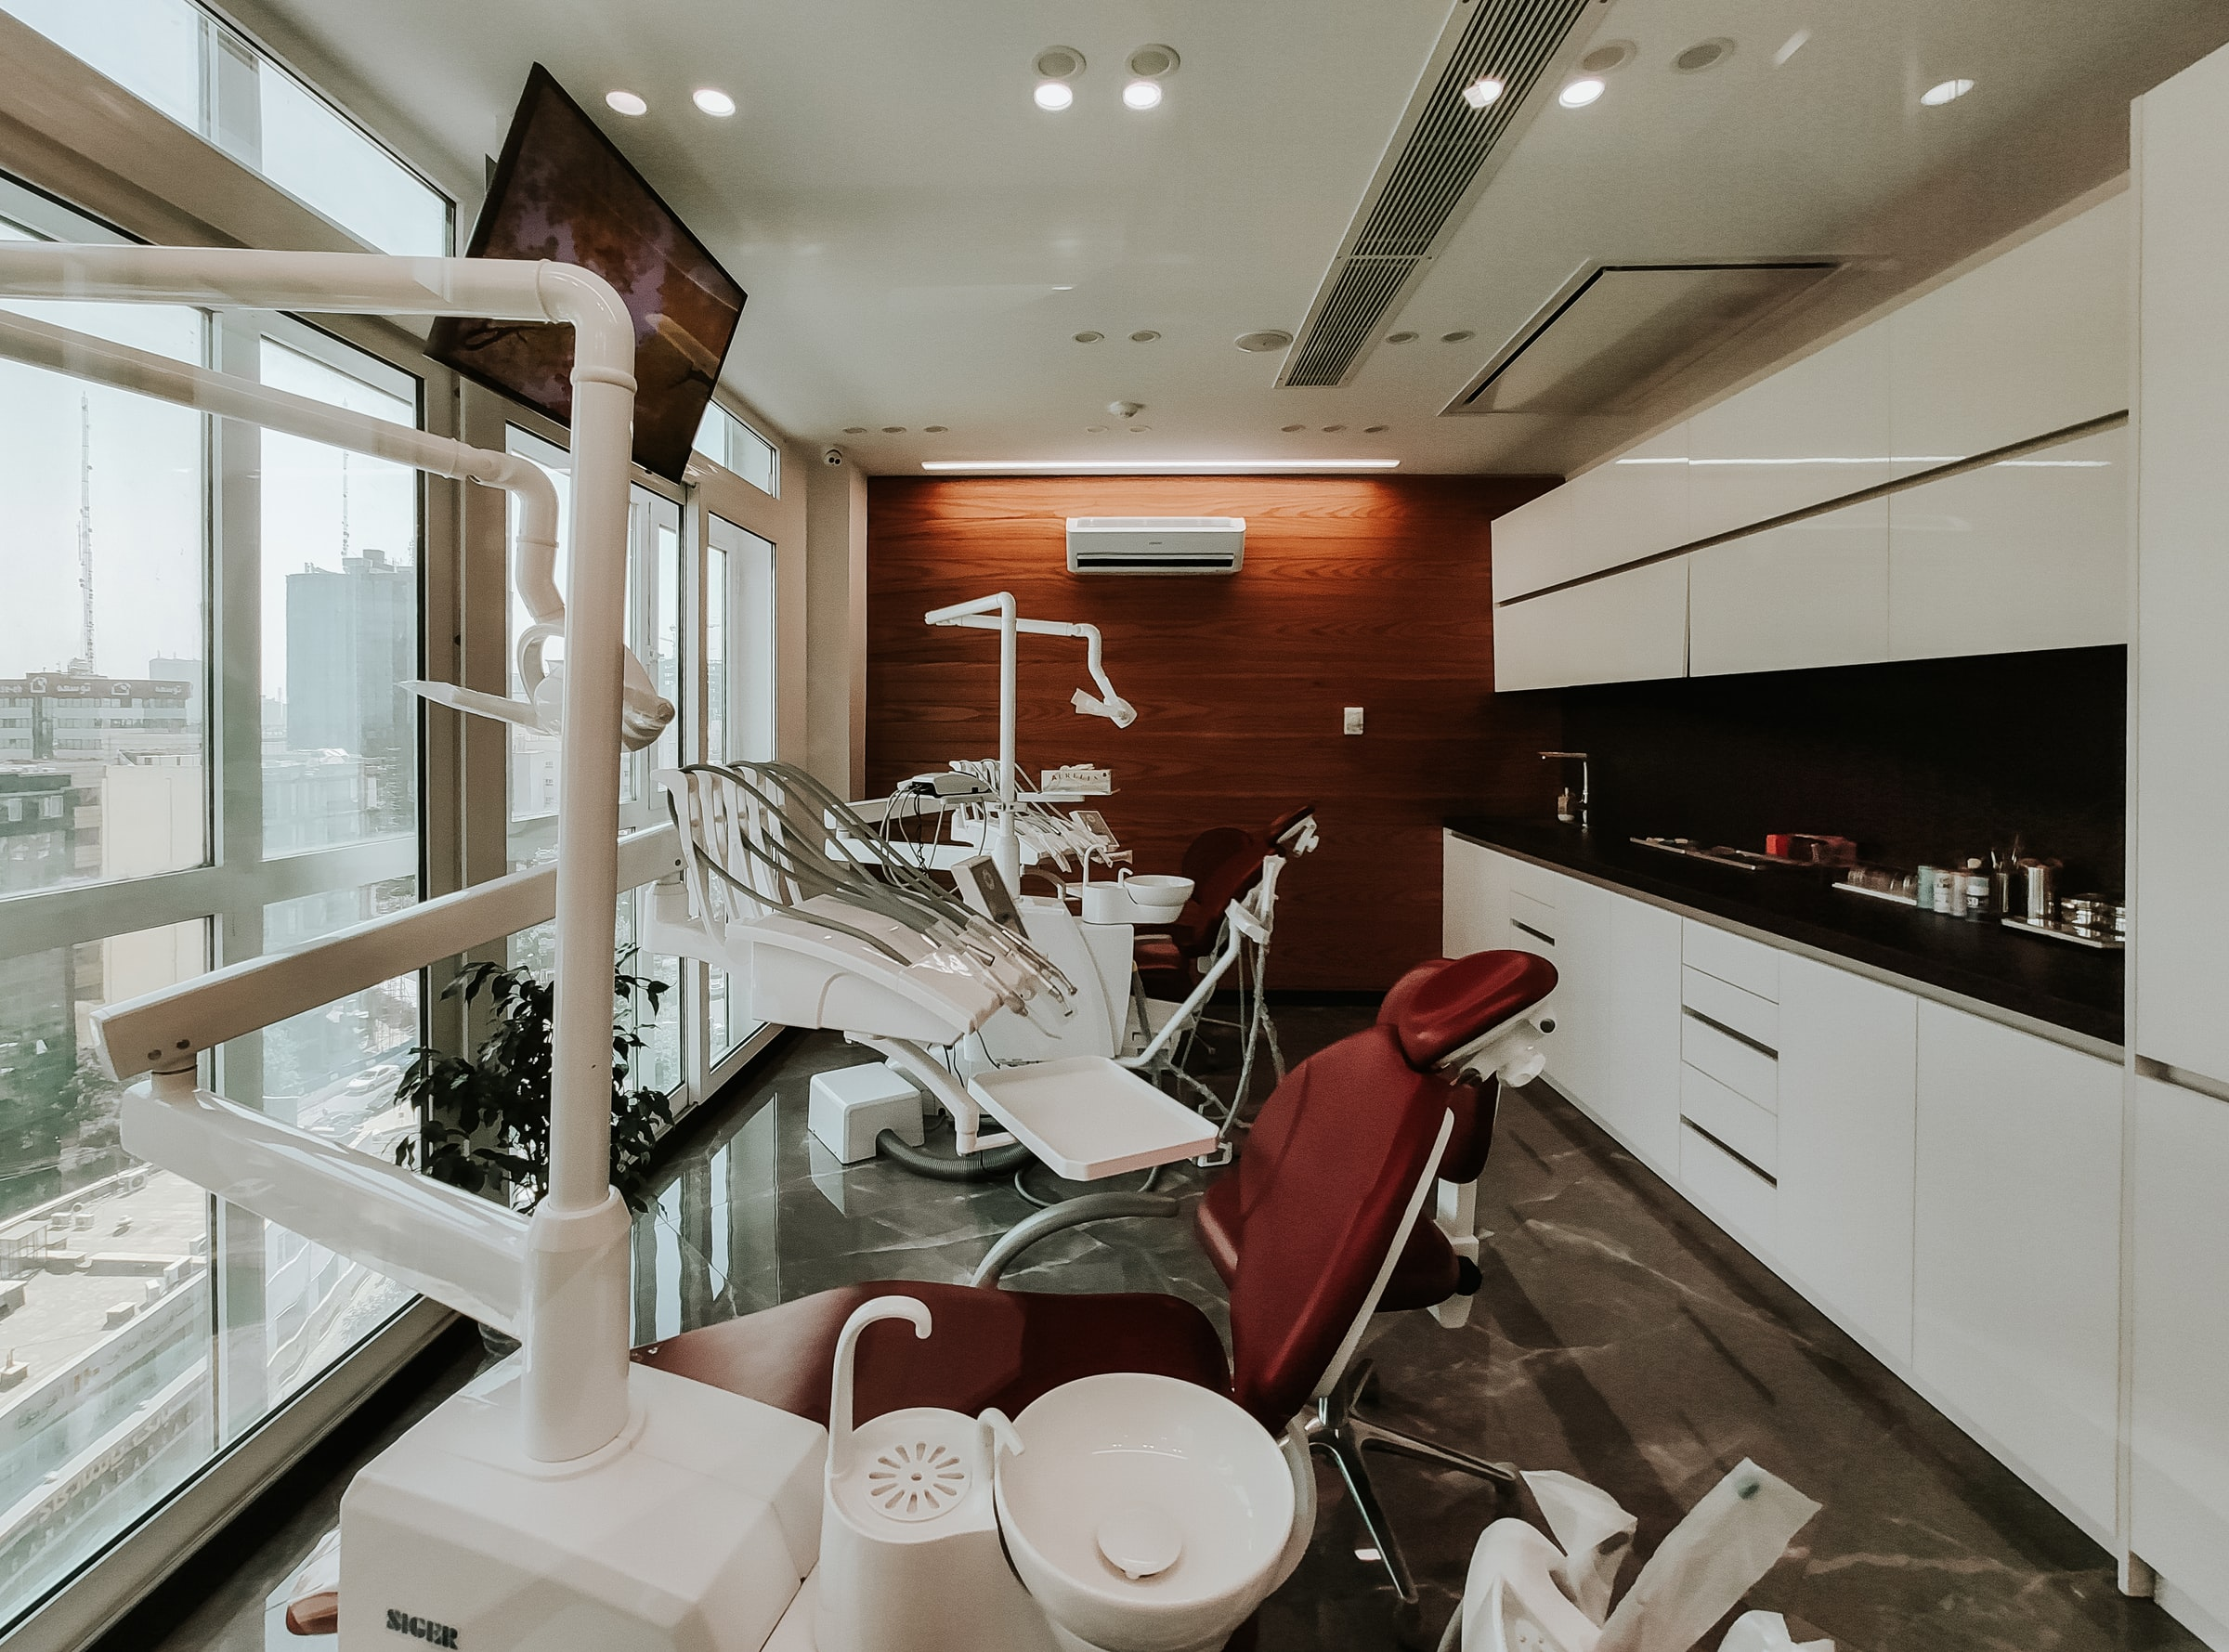 Bloomfield Dentist | What can you expect at the dentist's visit?